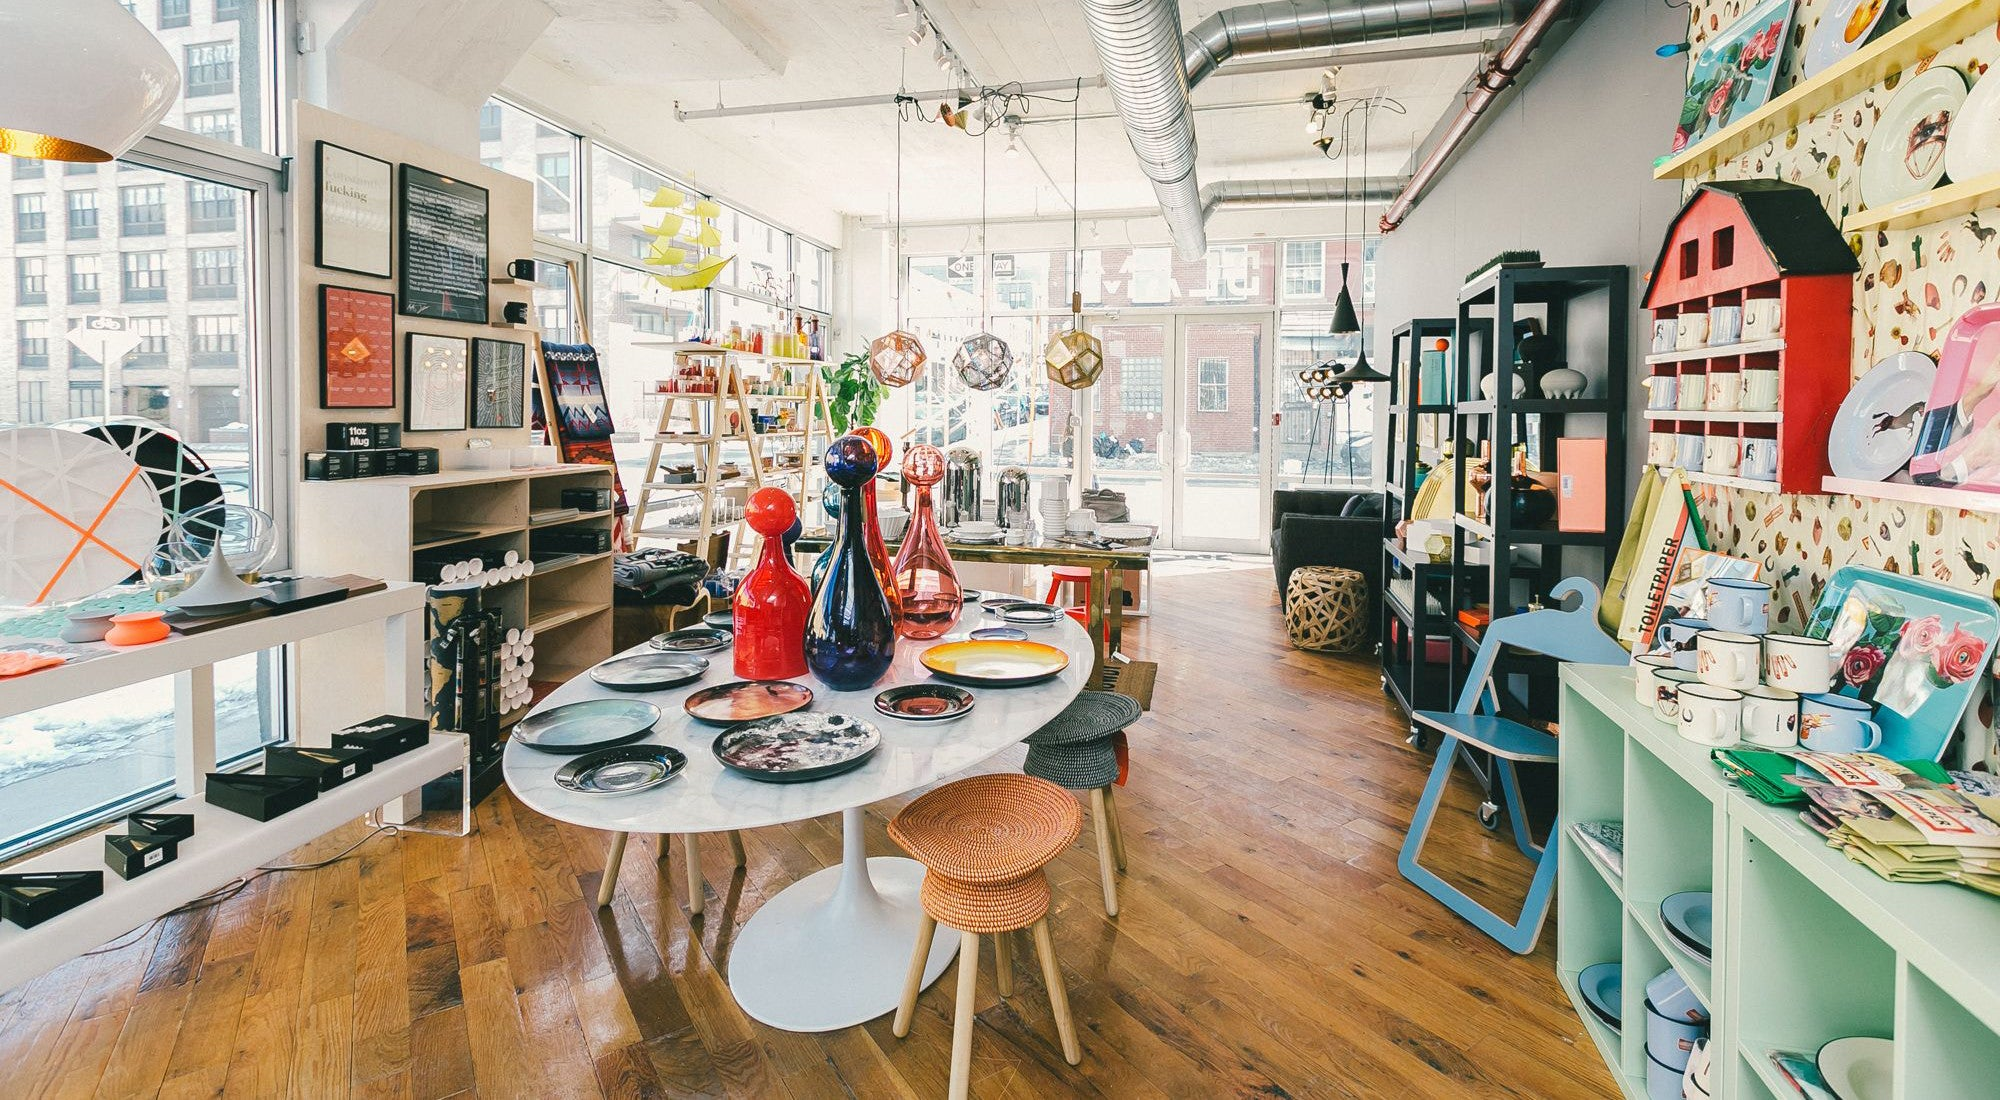 BEAM Named To Racked NYu0027s List Of Best Home And Furniture Stores In NYC!